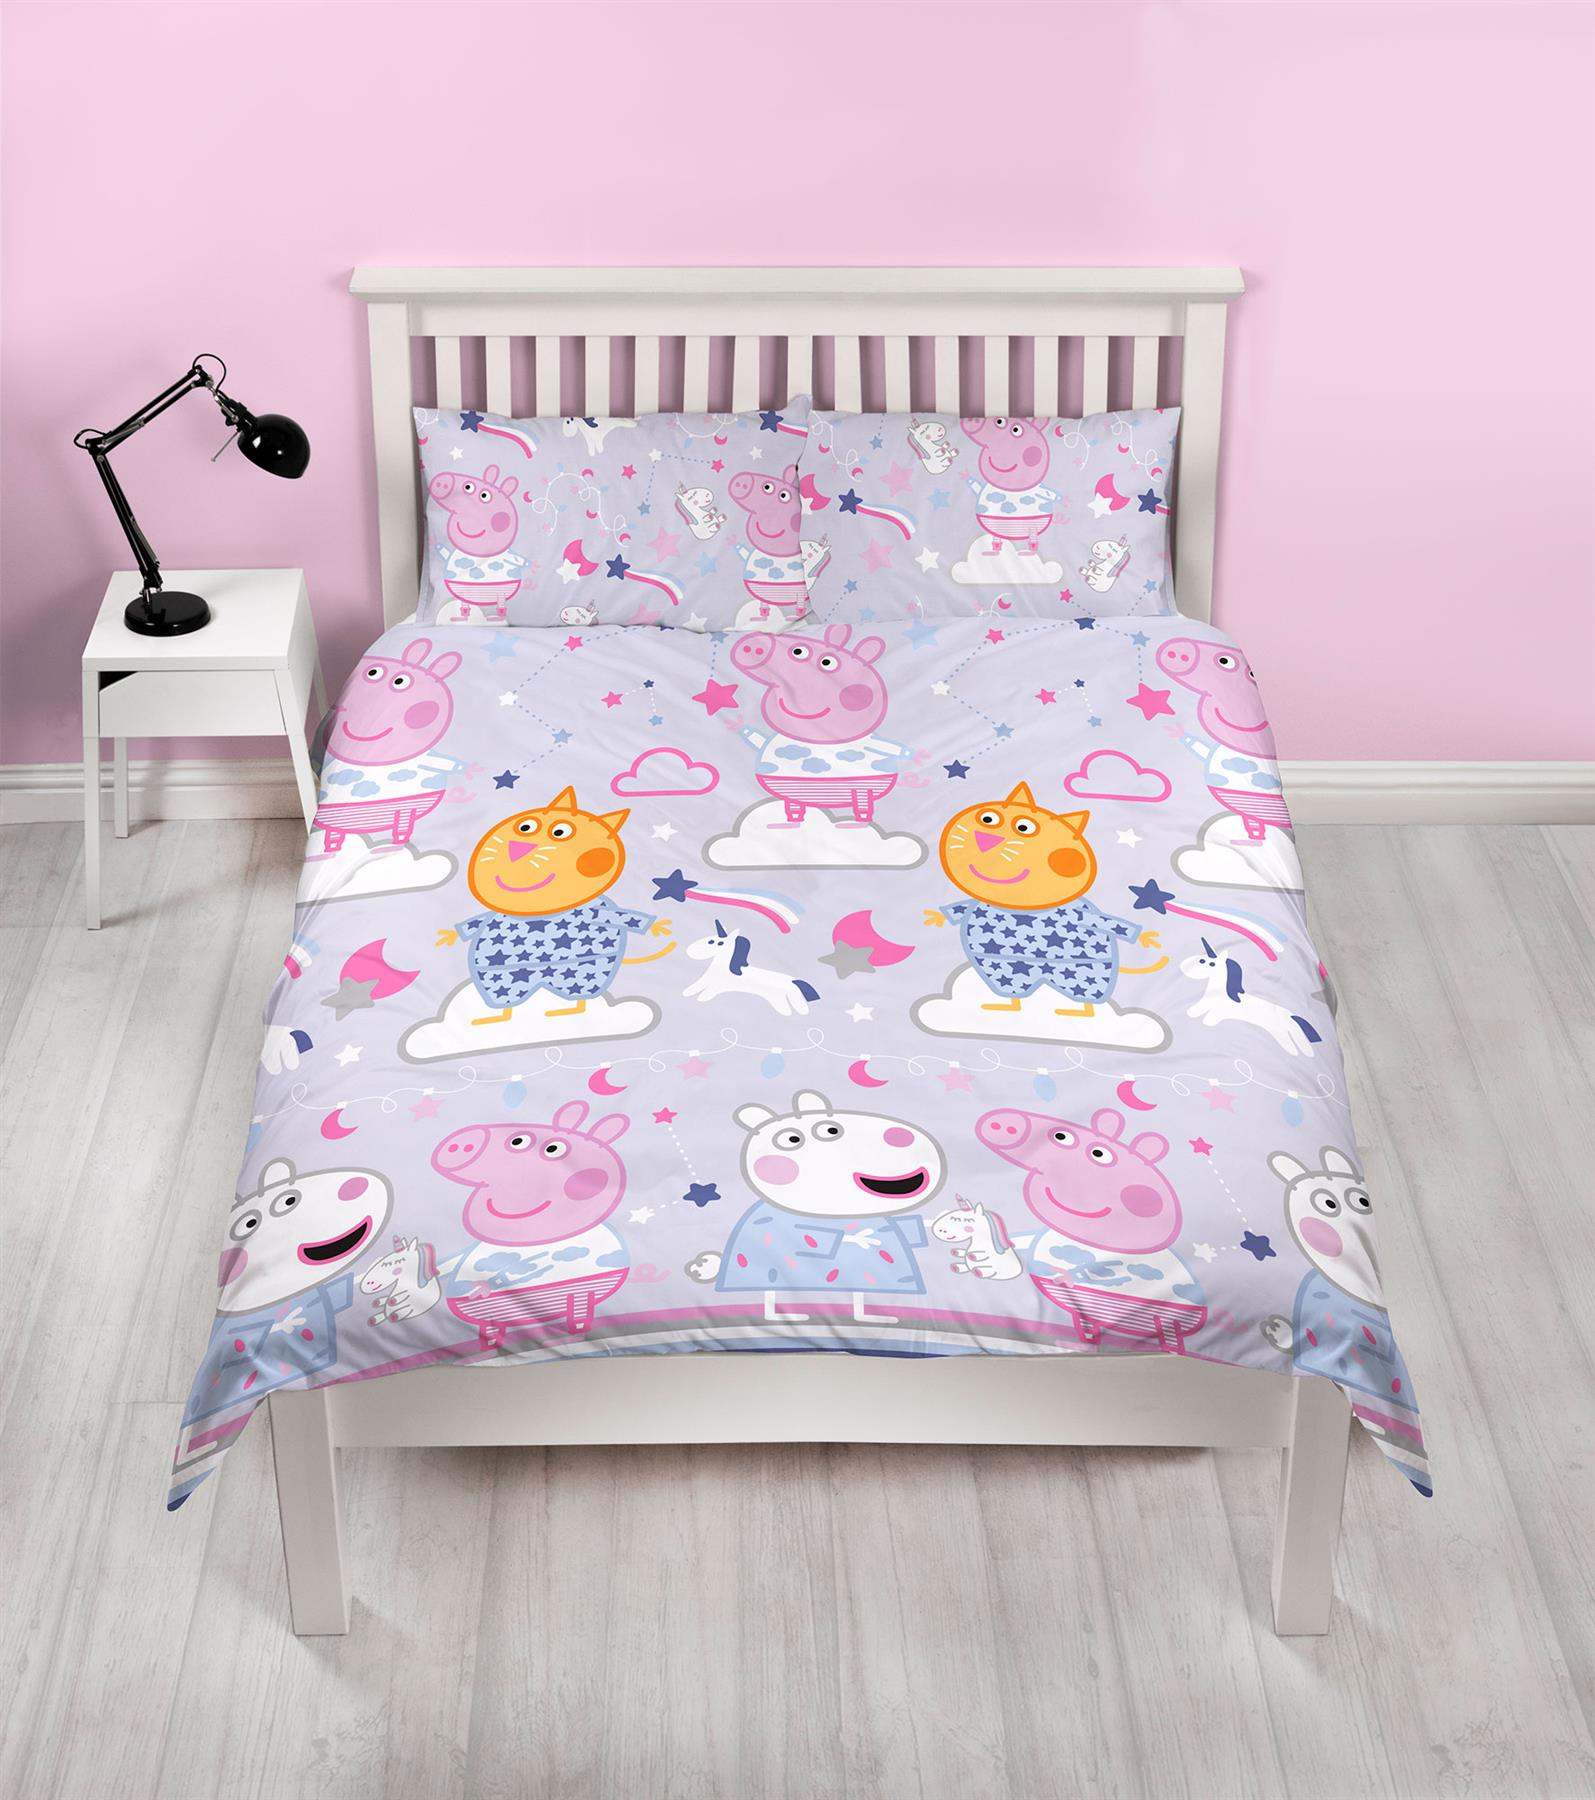 Oficial-Peppa-Pig-George-fundas-nordicas-SINGLE-doble-Ropa-De-Cama-Reversible miniatura 28